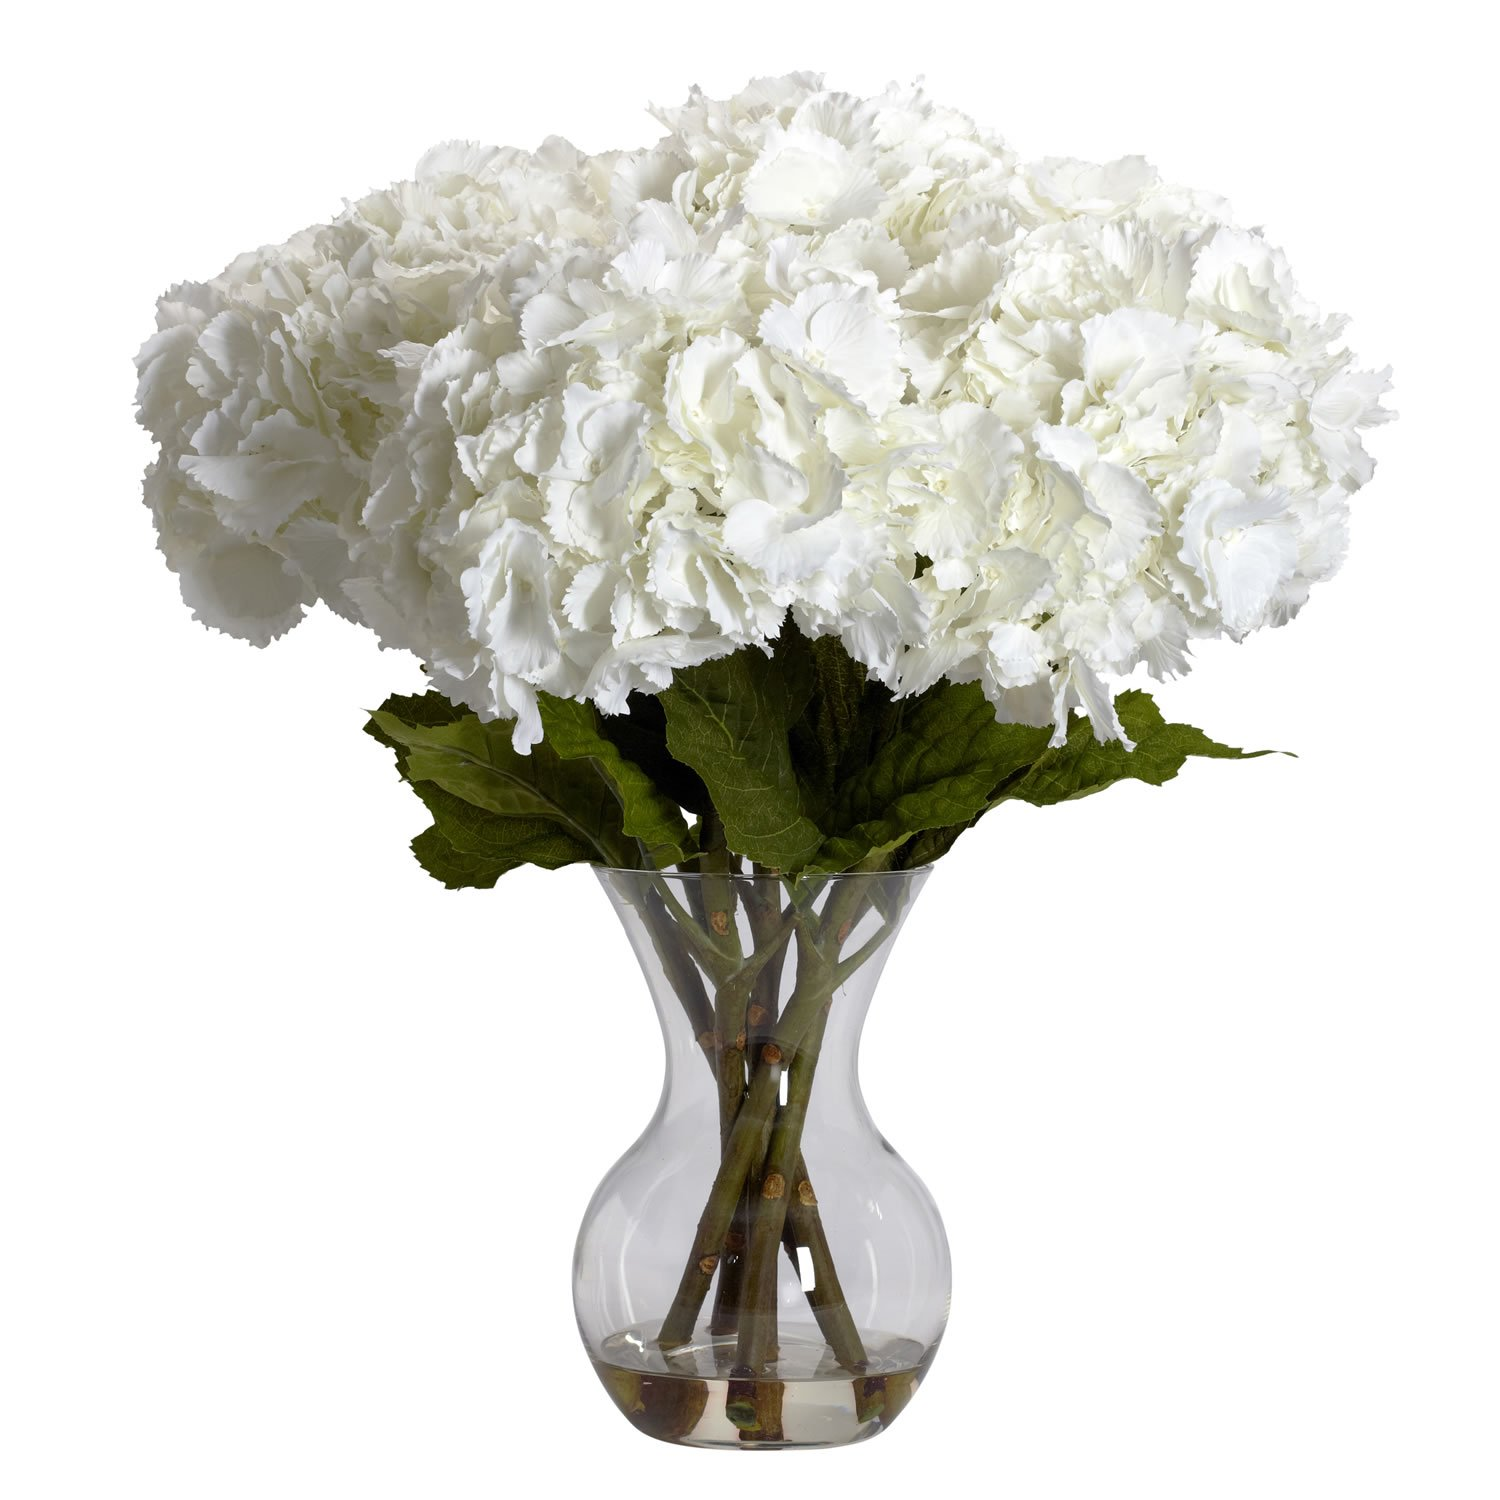 Amazon.com: Nearly Natural 1260 Large Hydrangea with Vase Silk ...